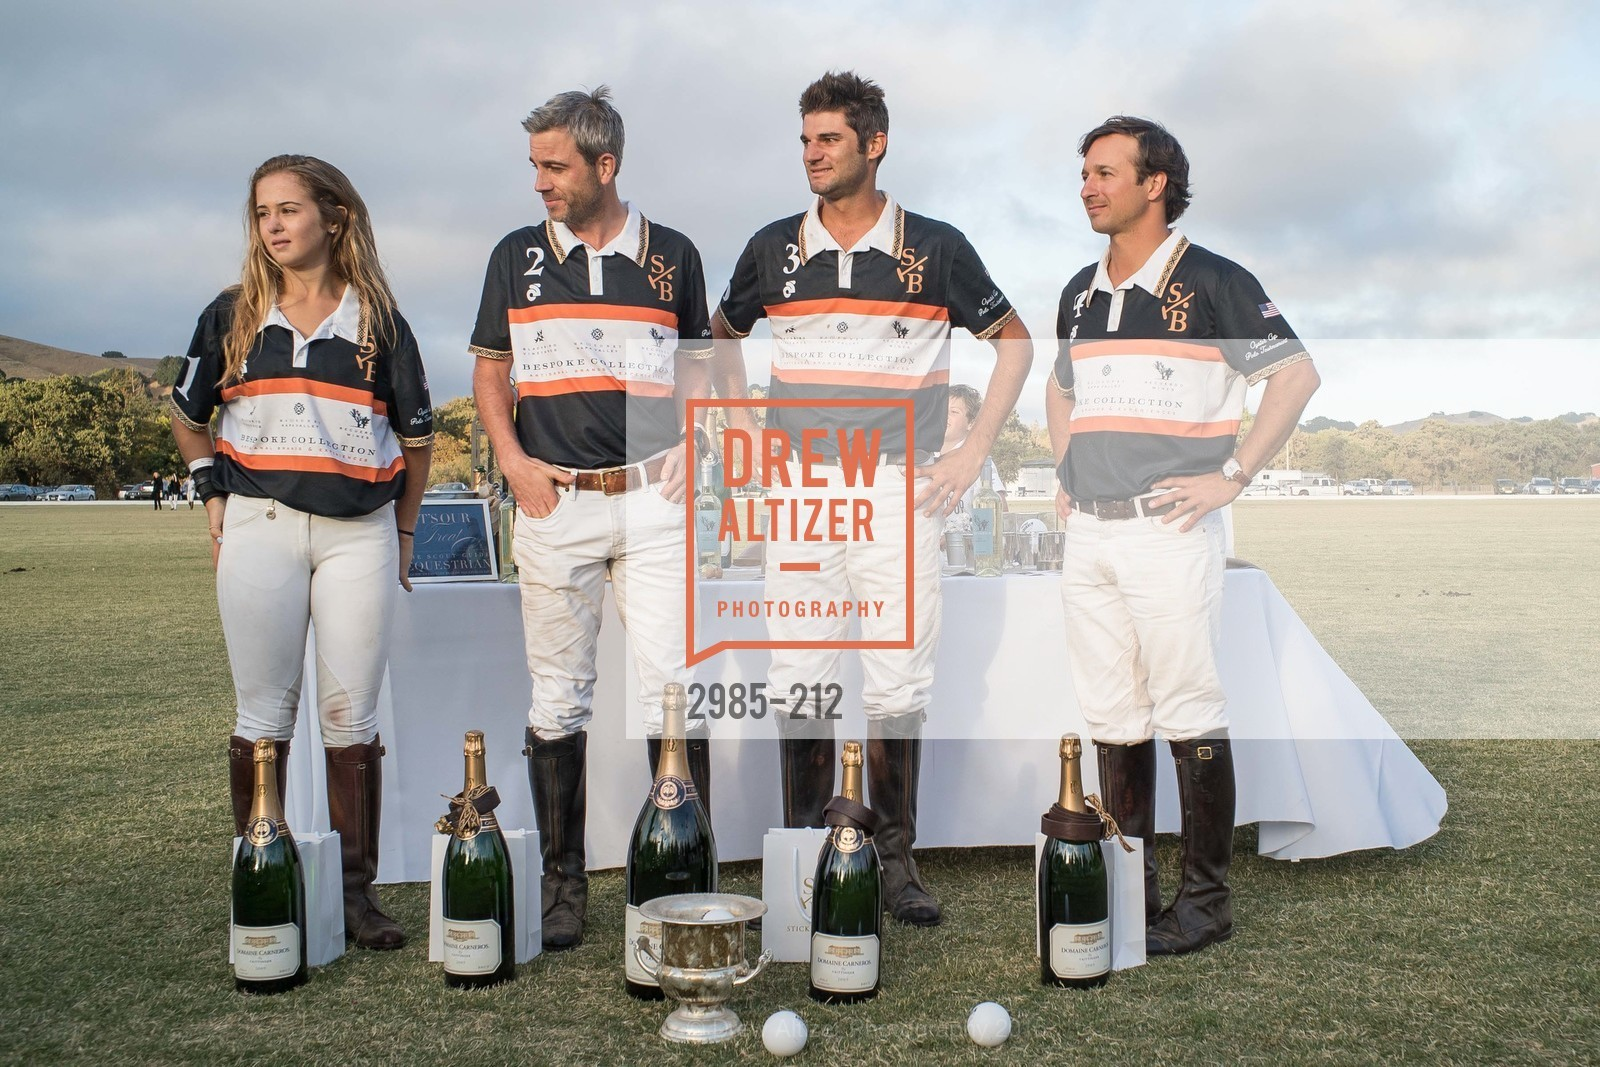 Fiona Bach, Jonathan Haswell, Ignacio Deltour, John Bickford, Stick & Ball Oyster Cup Polo Tournament, Cerro Pampa Polo Club, July 25th, 2015,Drew Altizer, Drew Altizer Photography, full-service event agency, private events, San Francisco photographer, photographer California